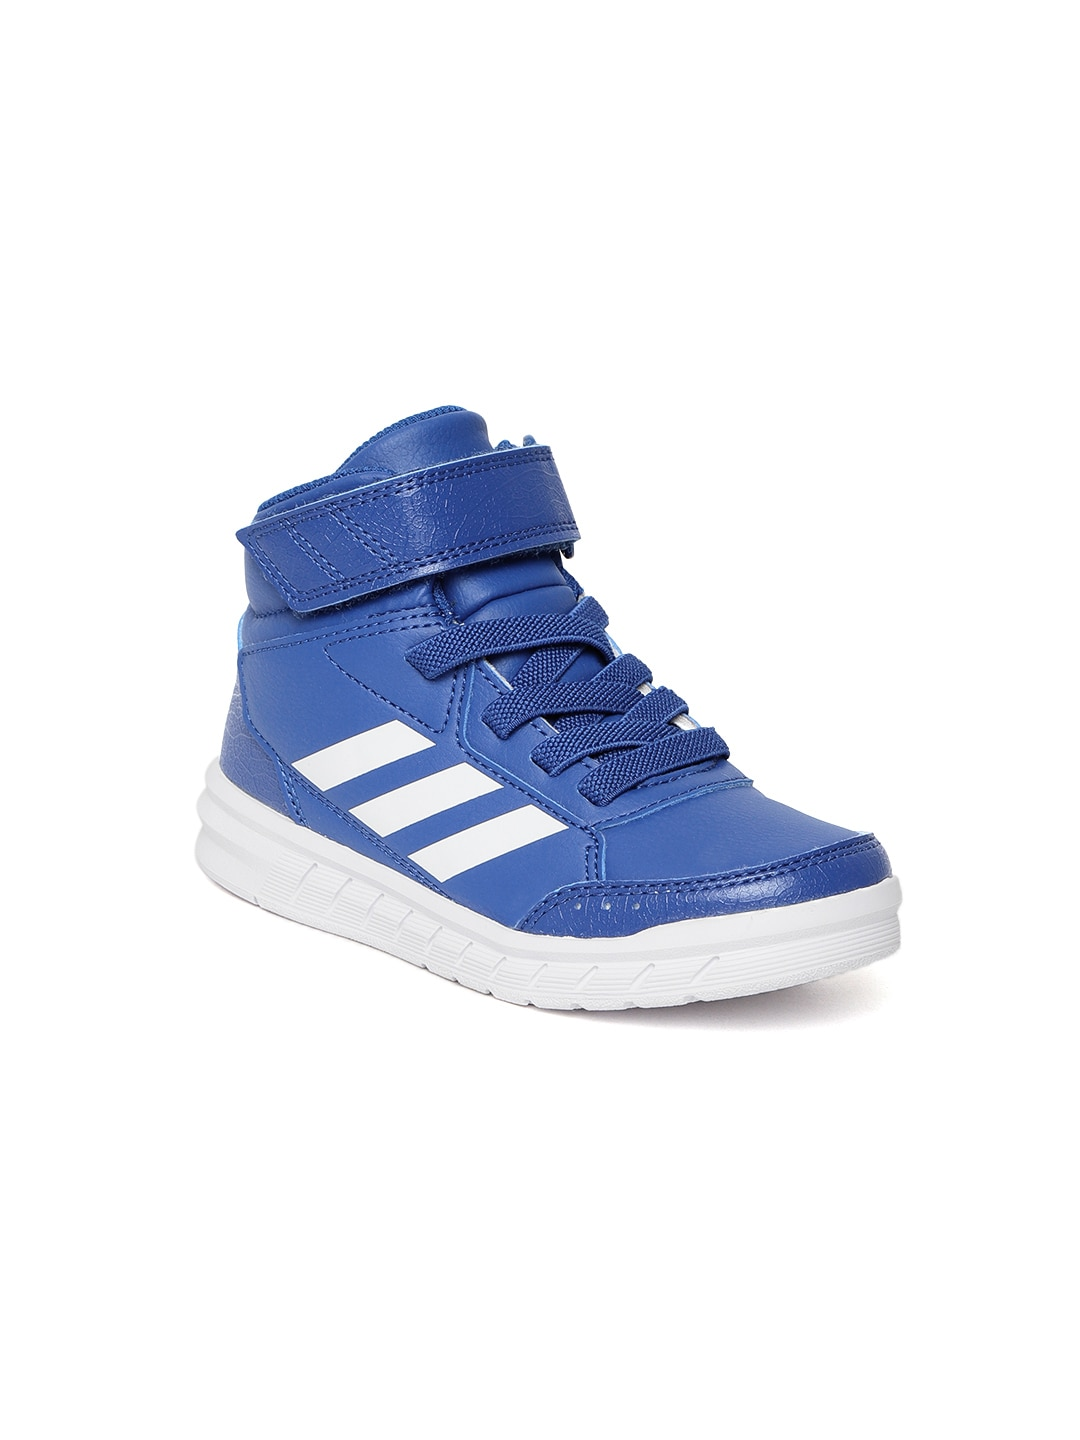 huge discount 41178 998a6 Adidas Shoes - Buy Adidas Shoes for Men  Women Online - Mynt